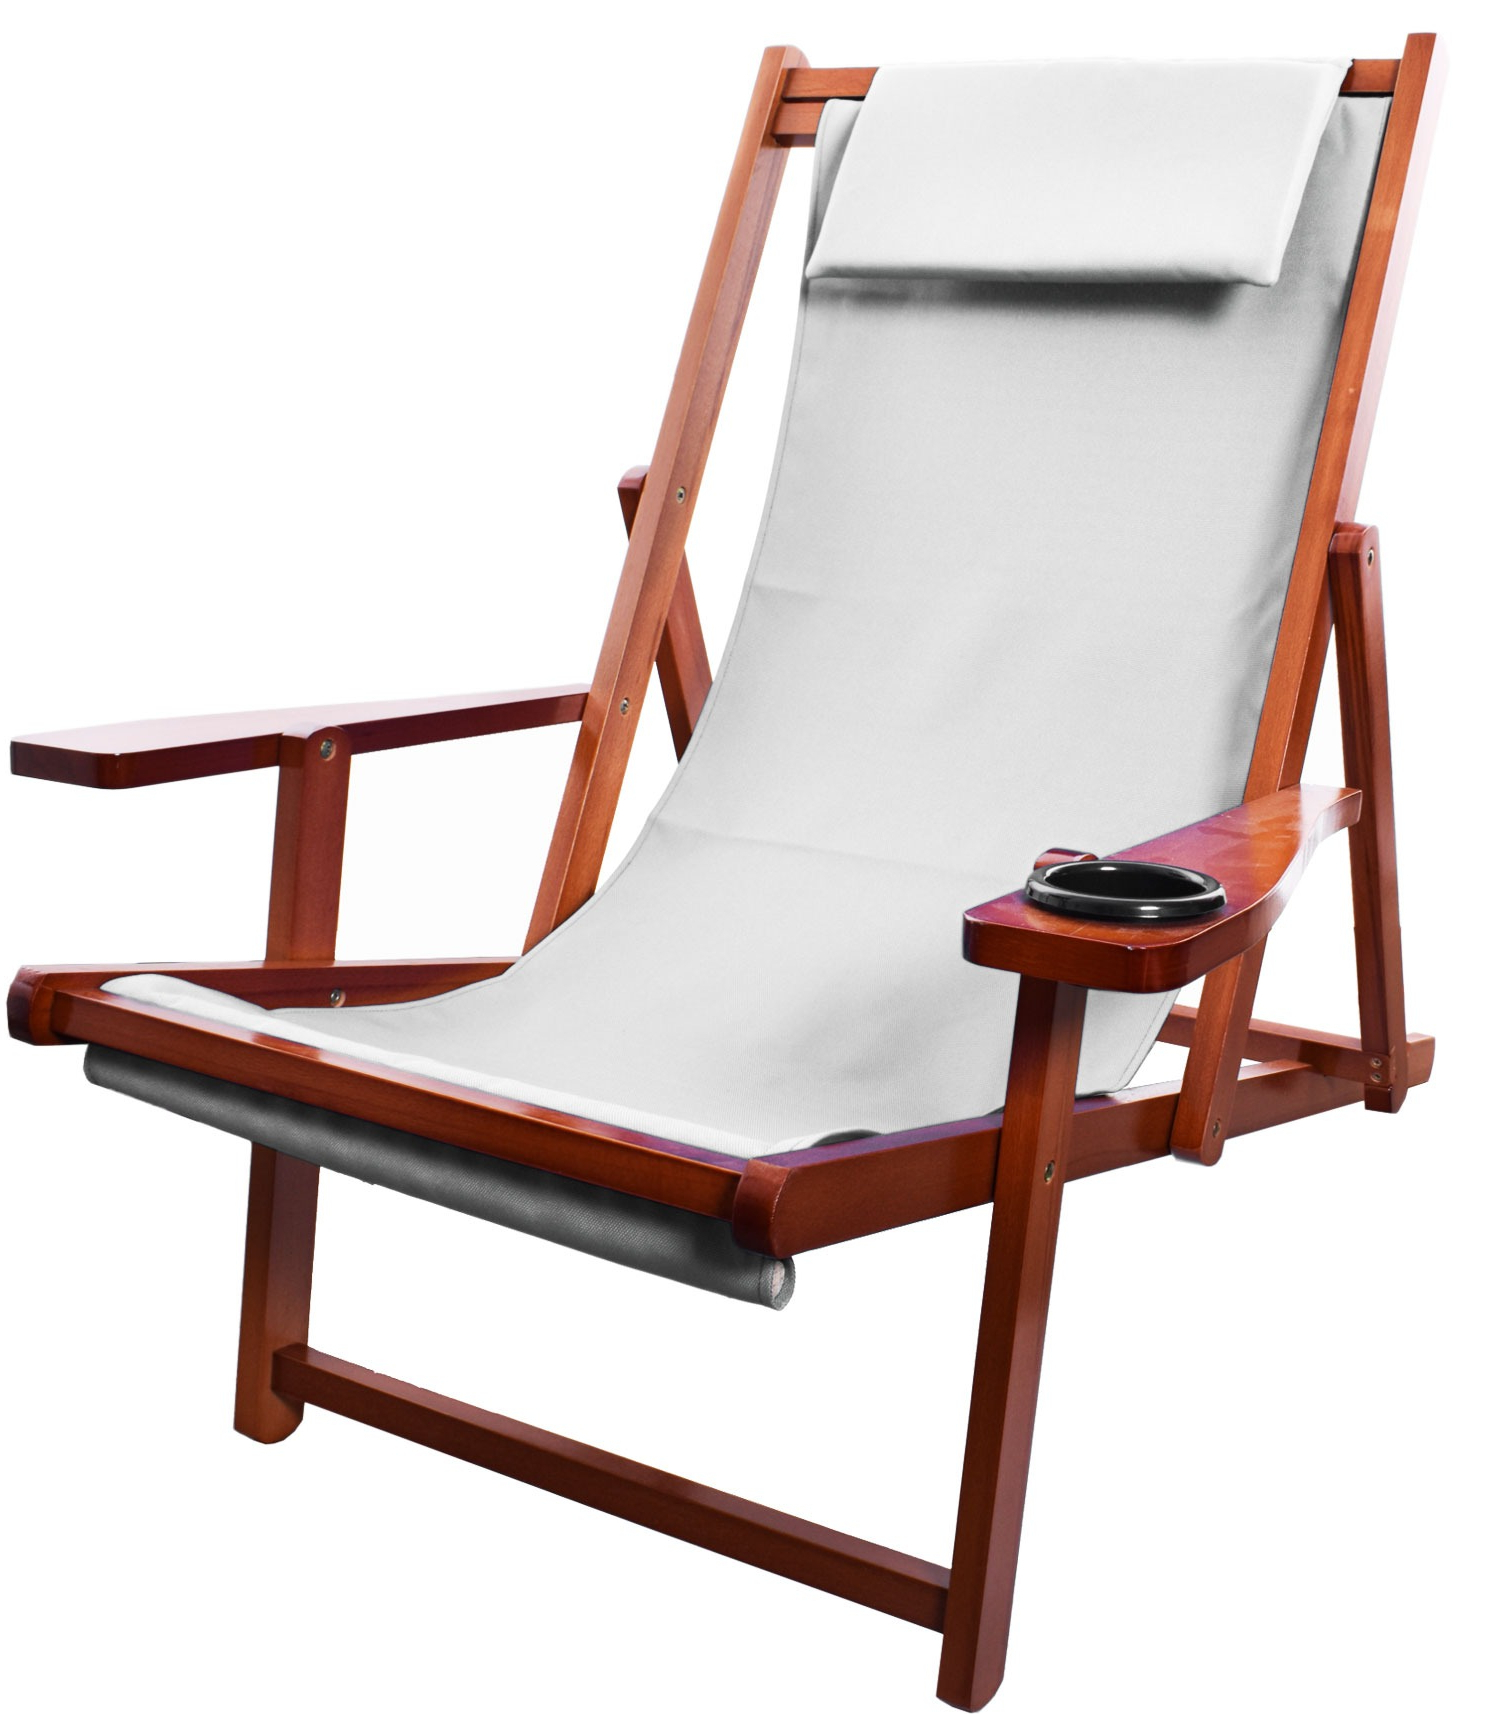 Outdoor Wood Sling Chairs Regarding Most Current Style# 01Sling – Wood Sling Chair – Peerless Umbrella (View 6 of 25)